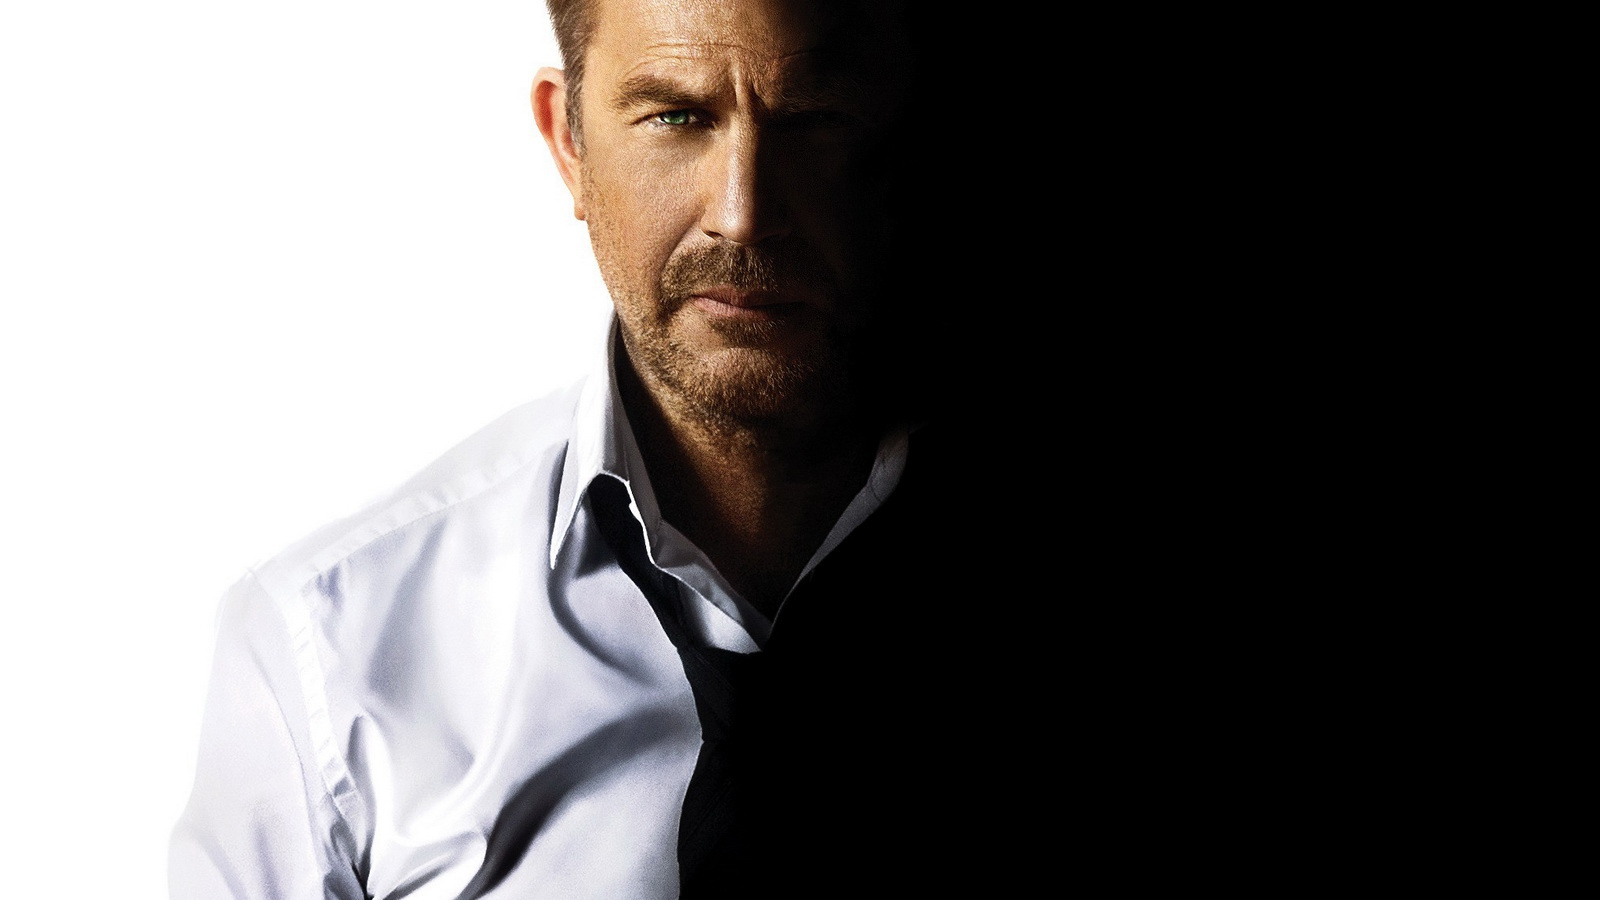 kevin costner computer wallpaper 58491